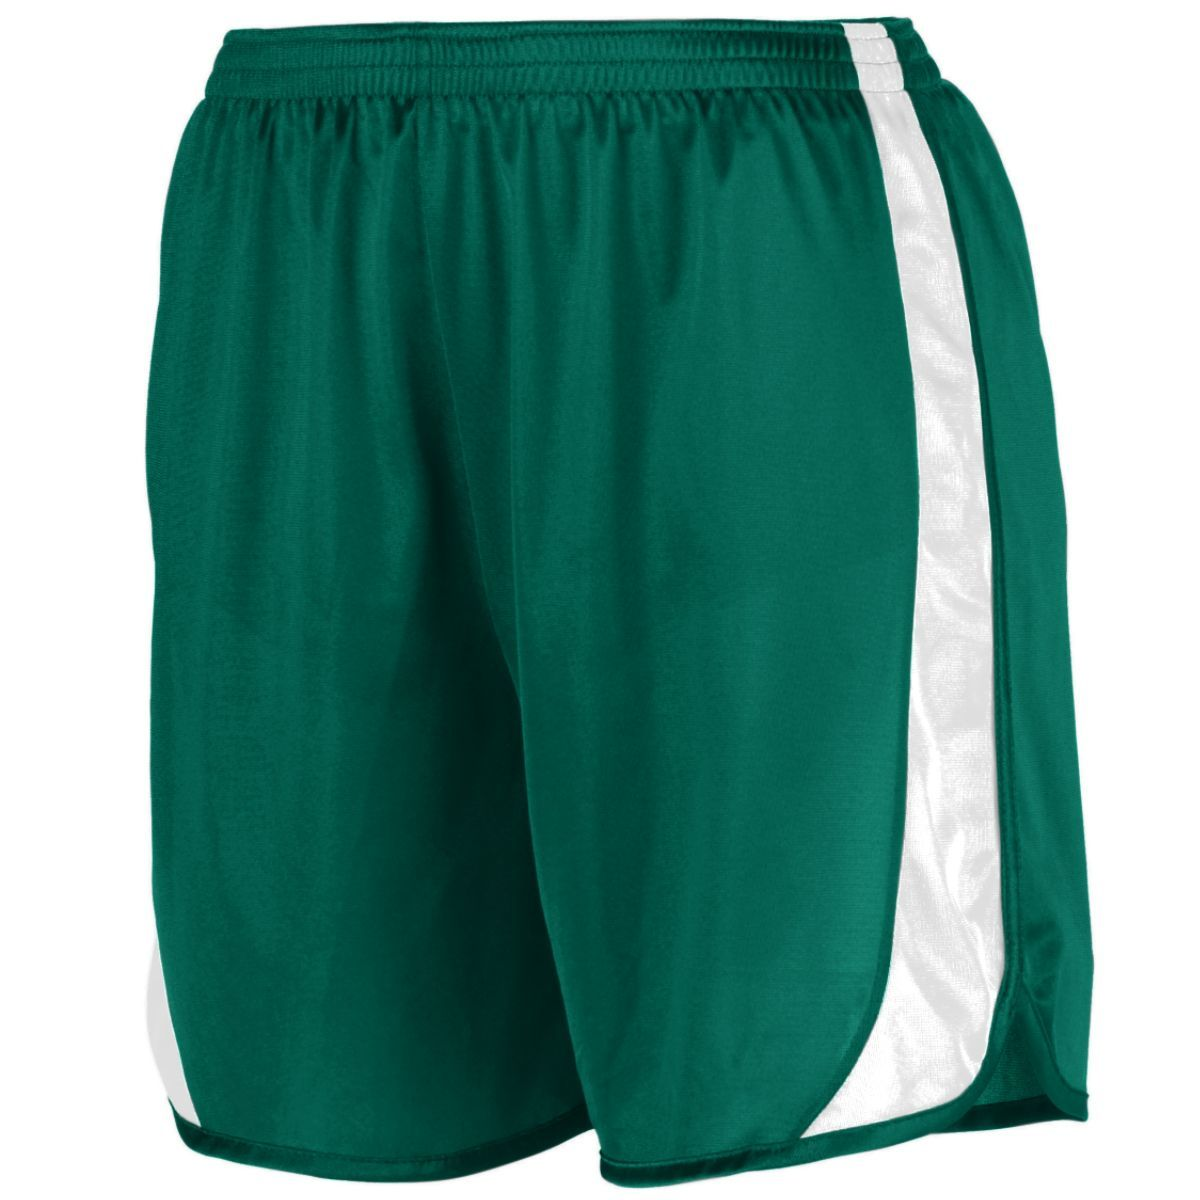 Youth Wicking Track Shorts With Side Insert - DARK GREEN/WHITE